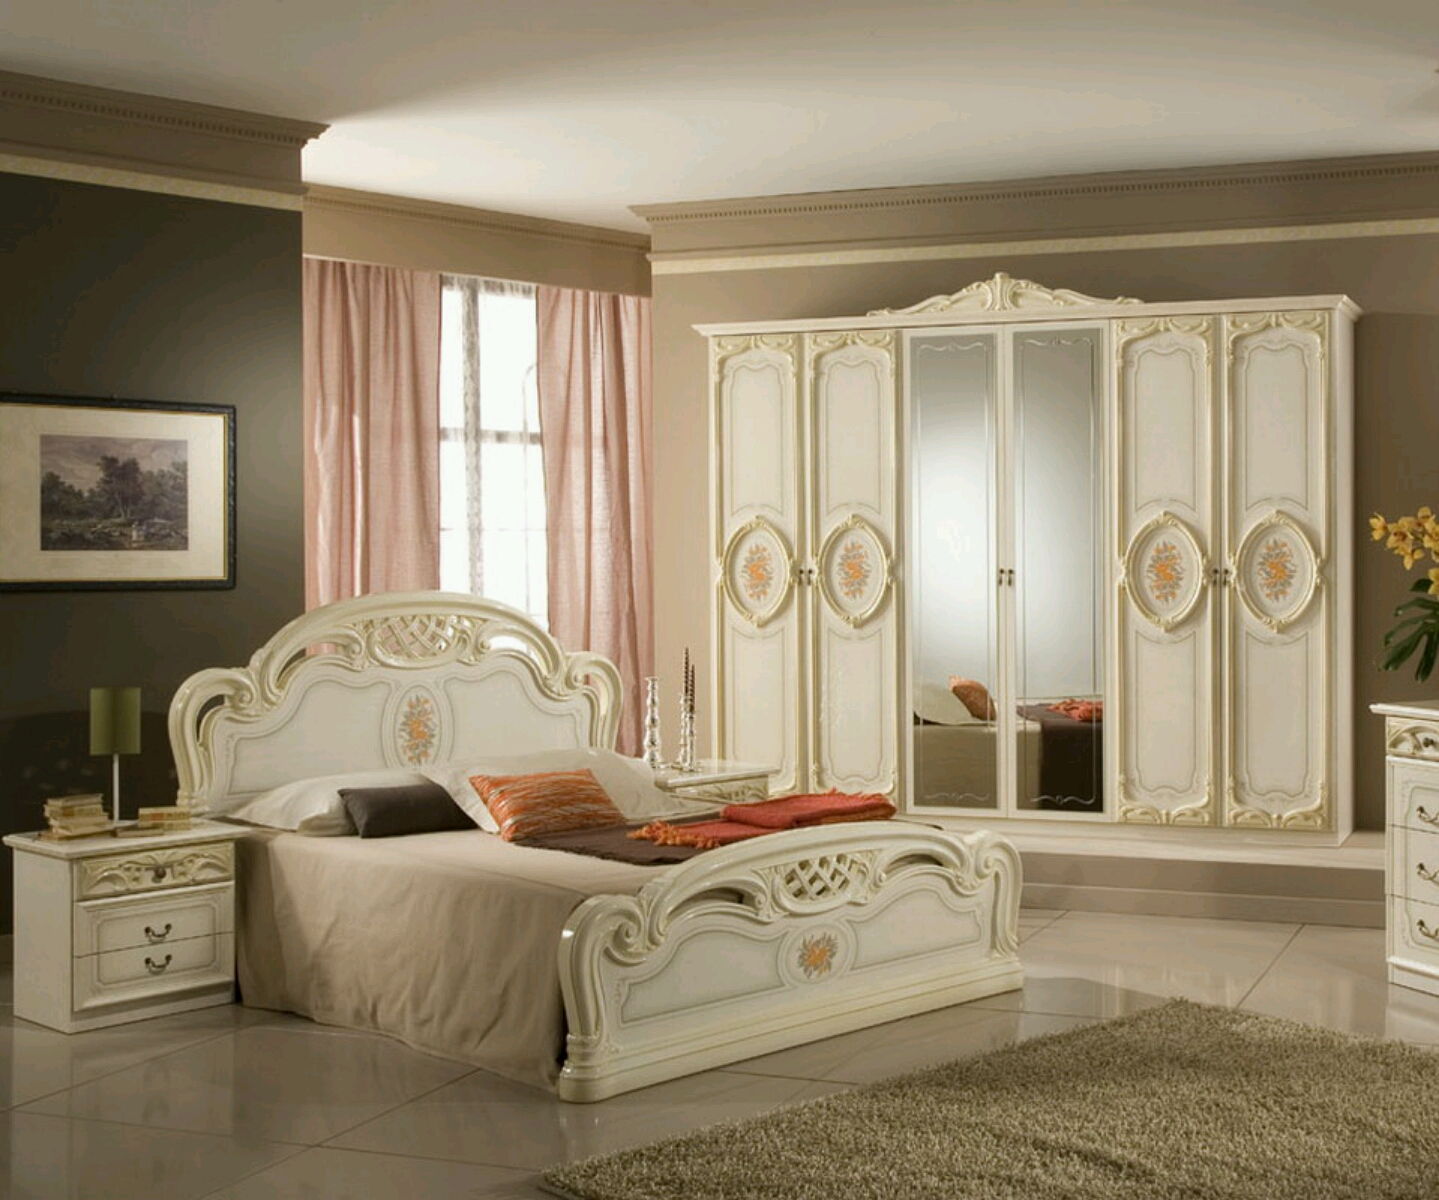 Modern luxury bedroom furniture designs ideas vintage for Furniture bed design